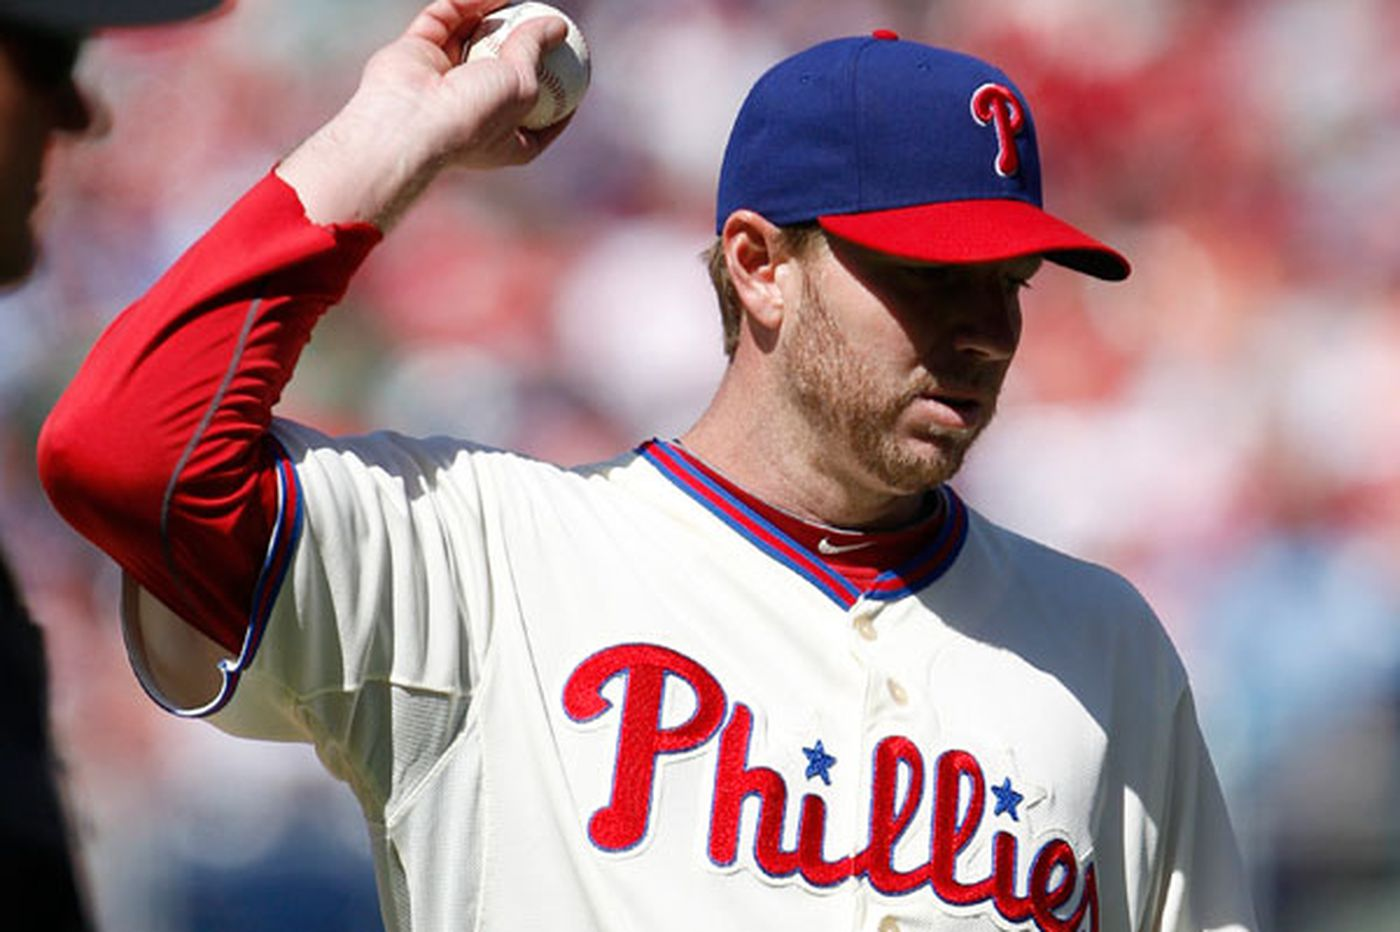 Roy Halladay offers apology to upset fans